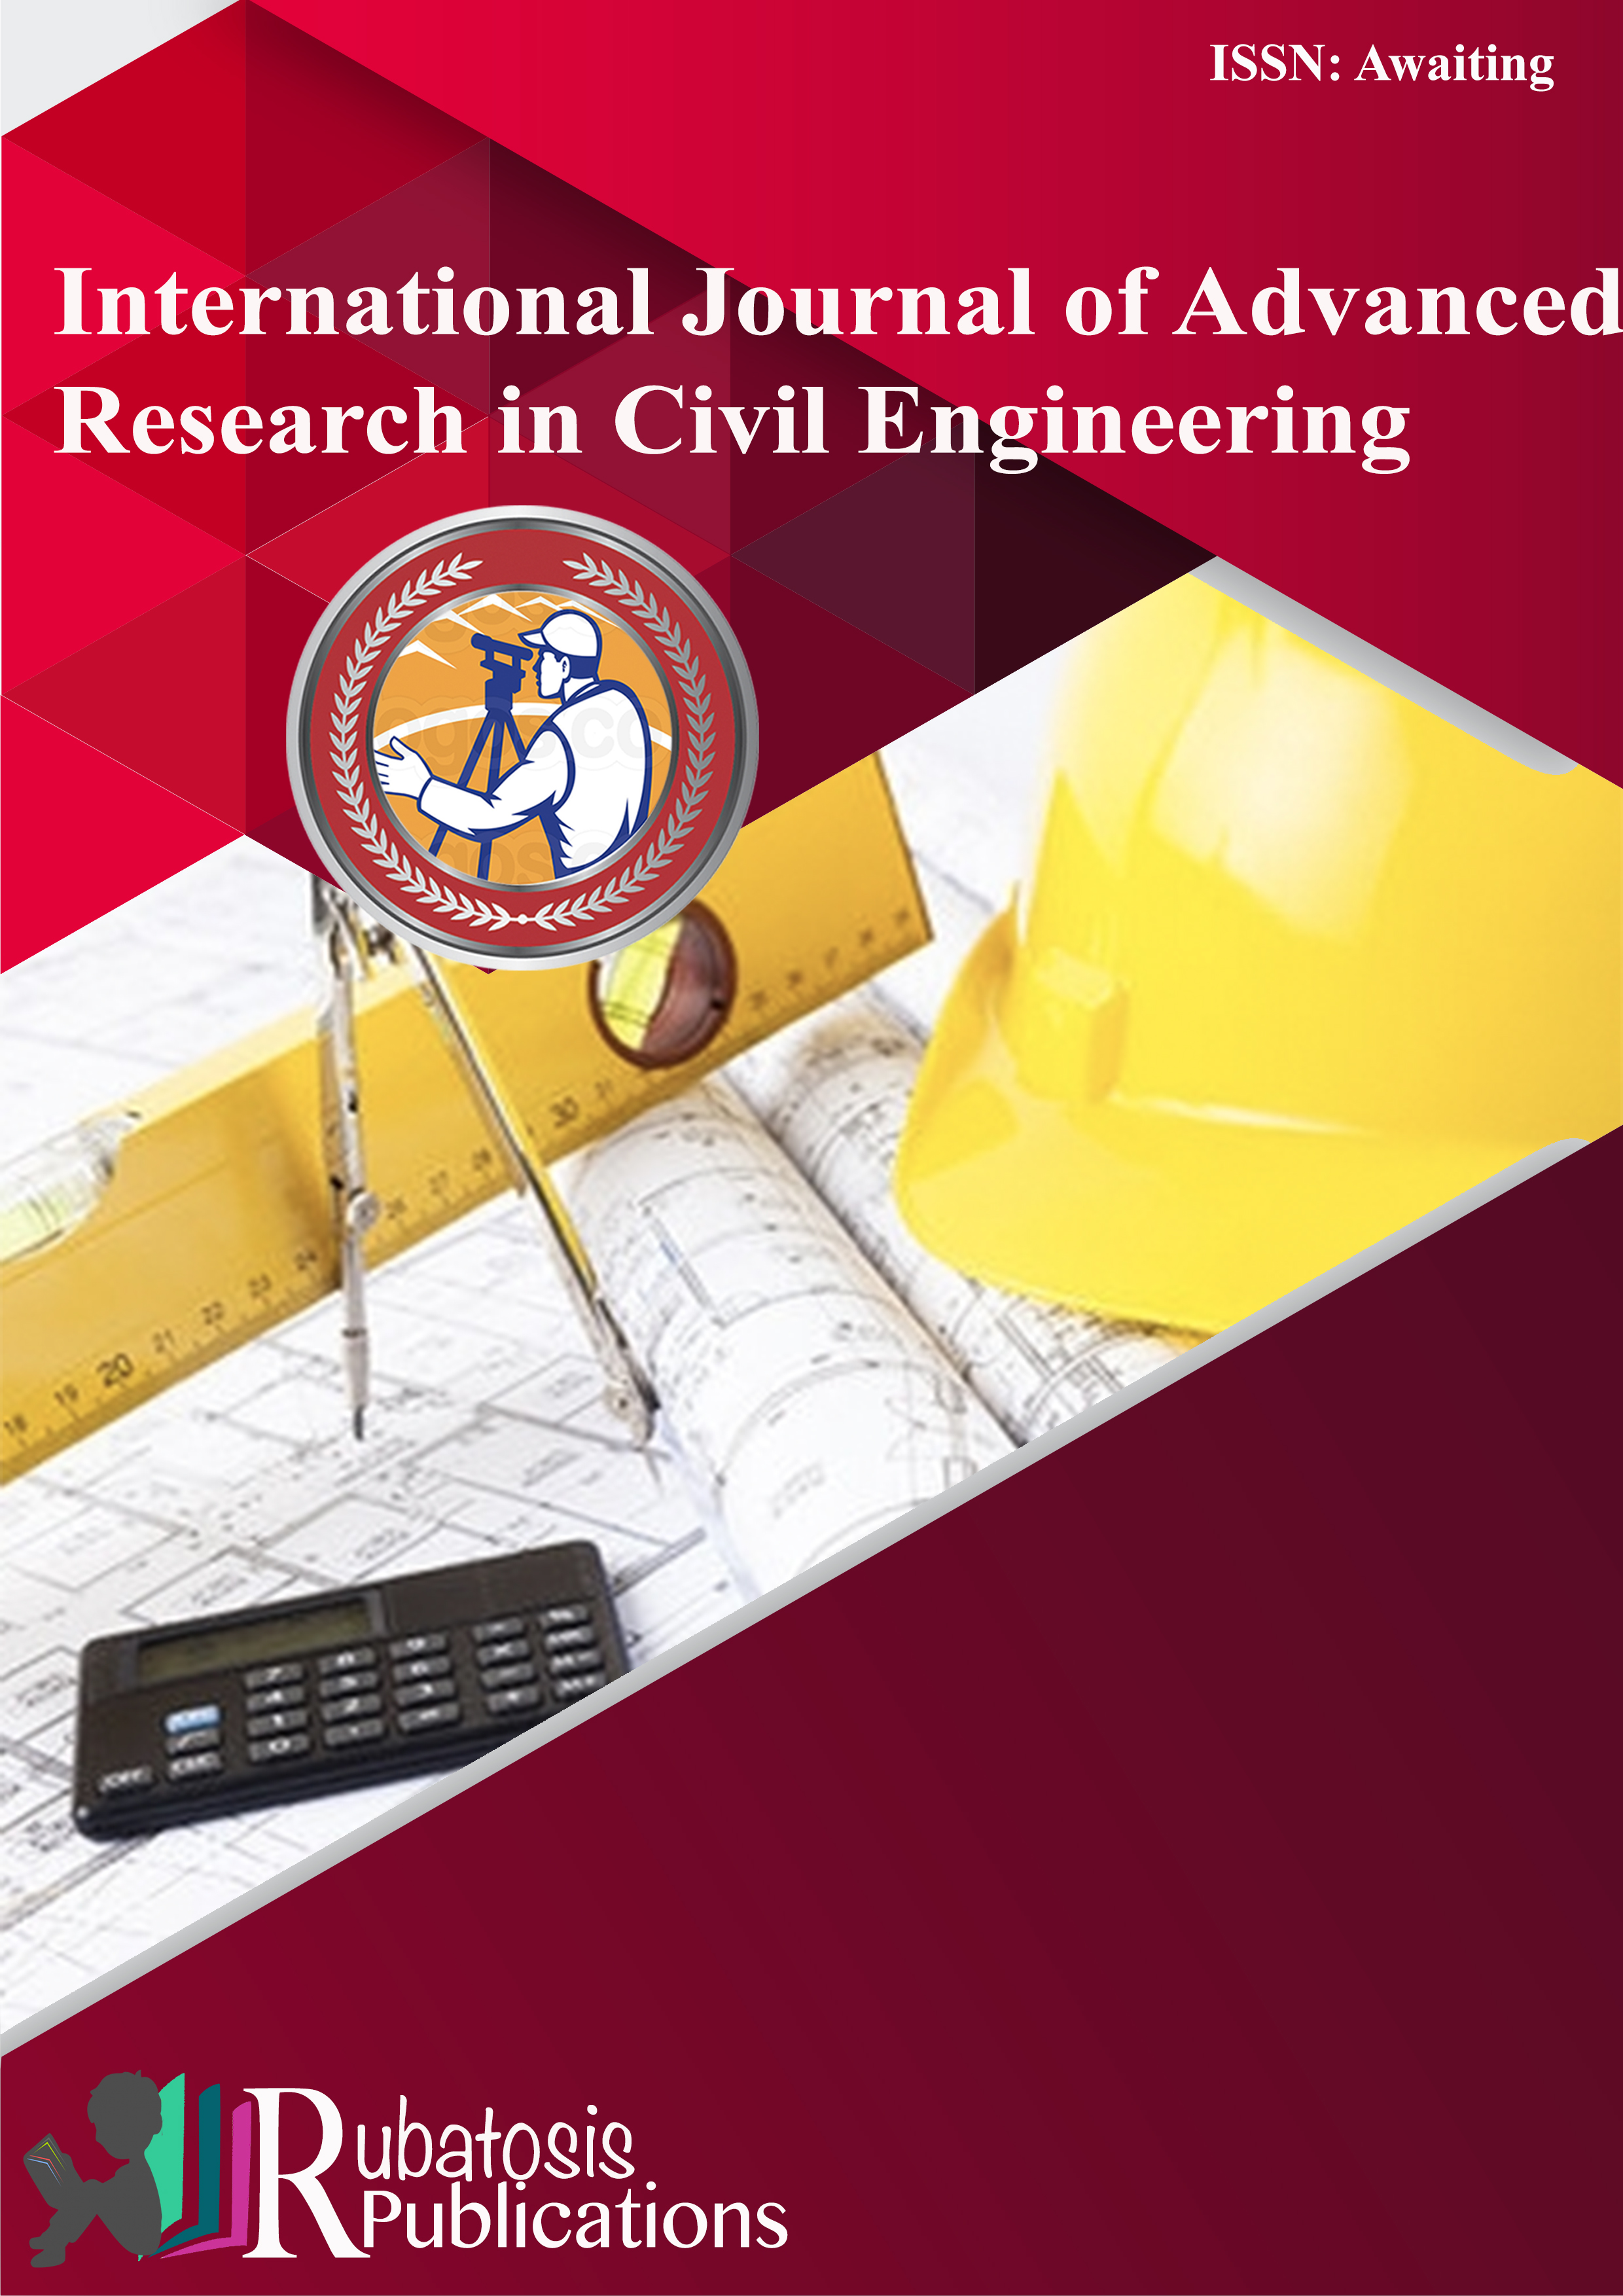 International Journal of Advanced Research in Civil Engineering